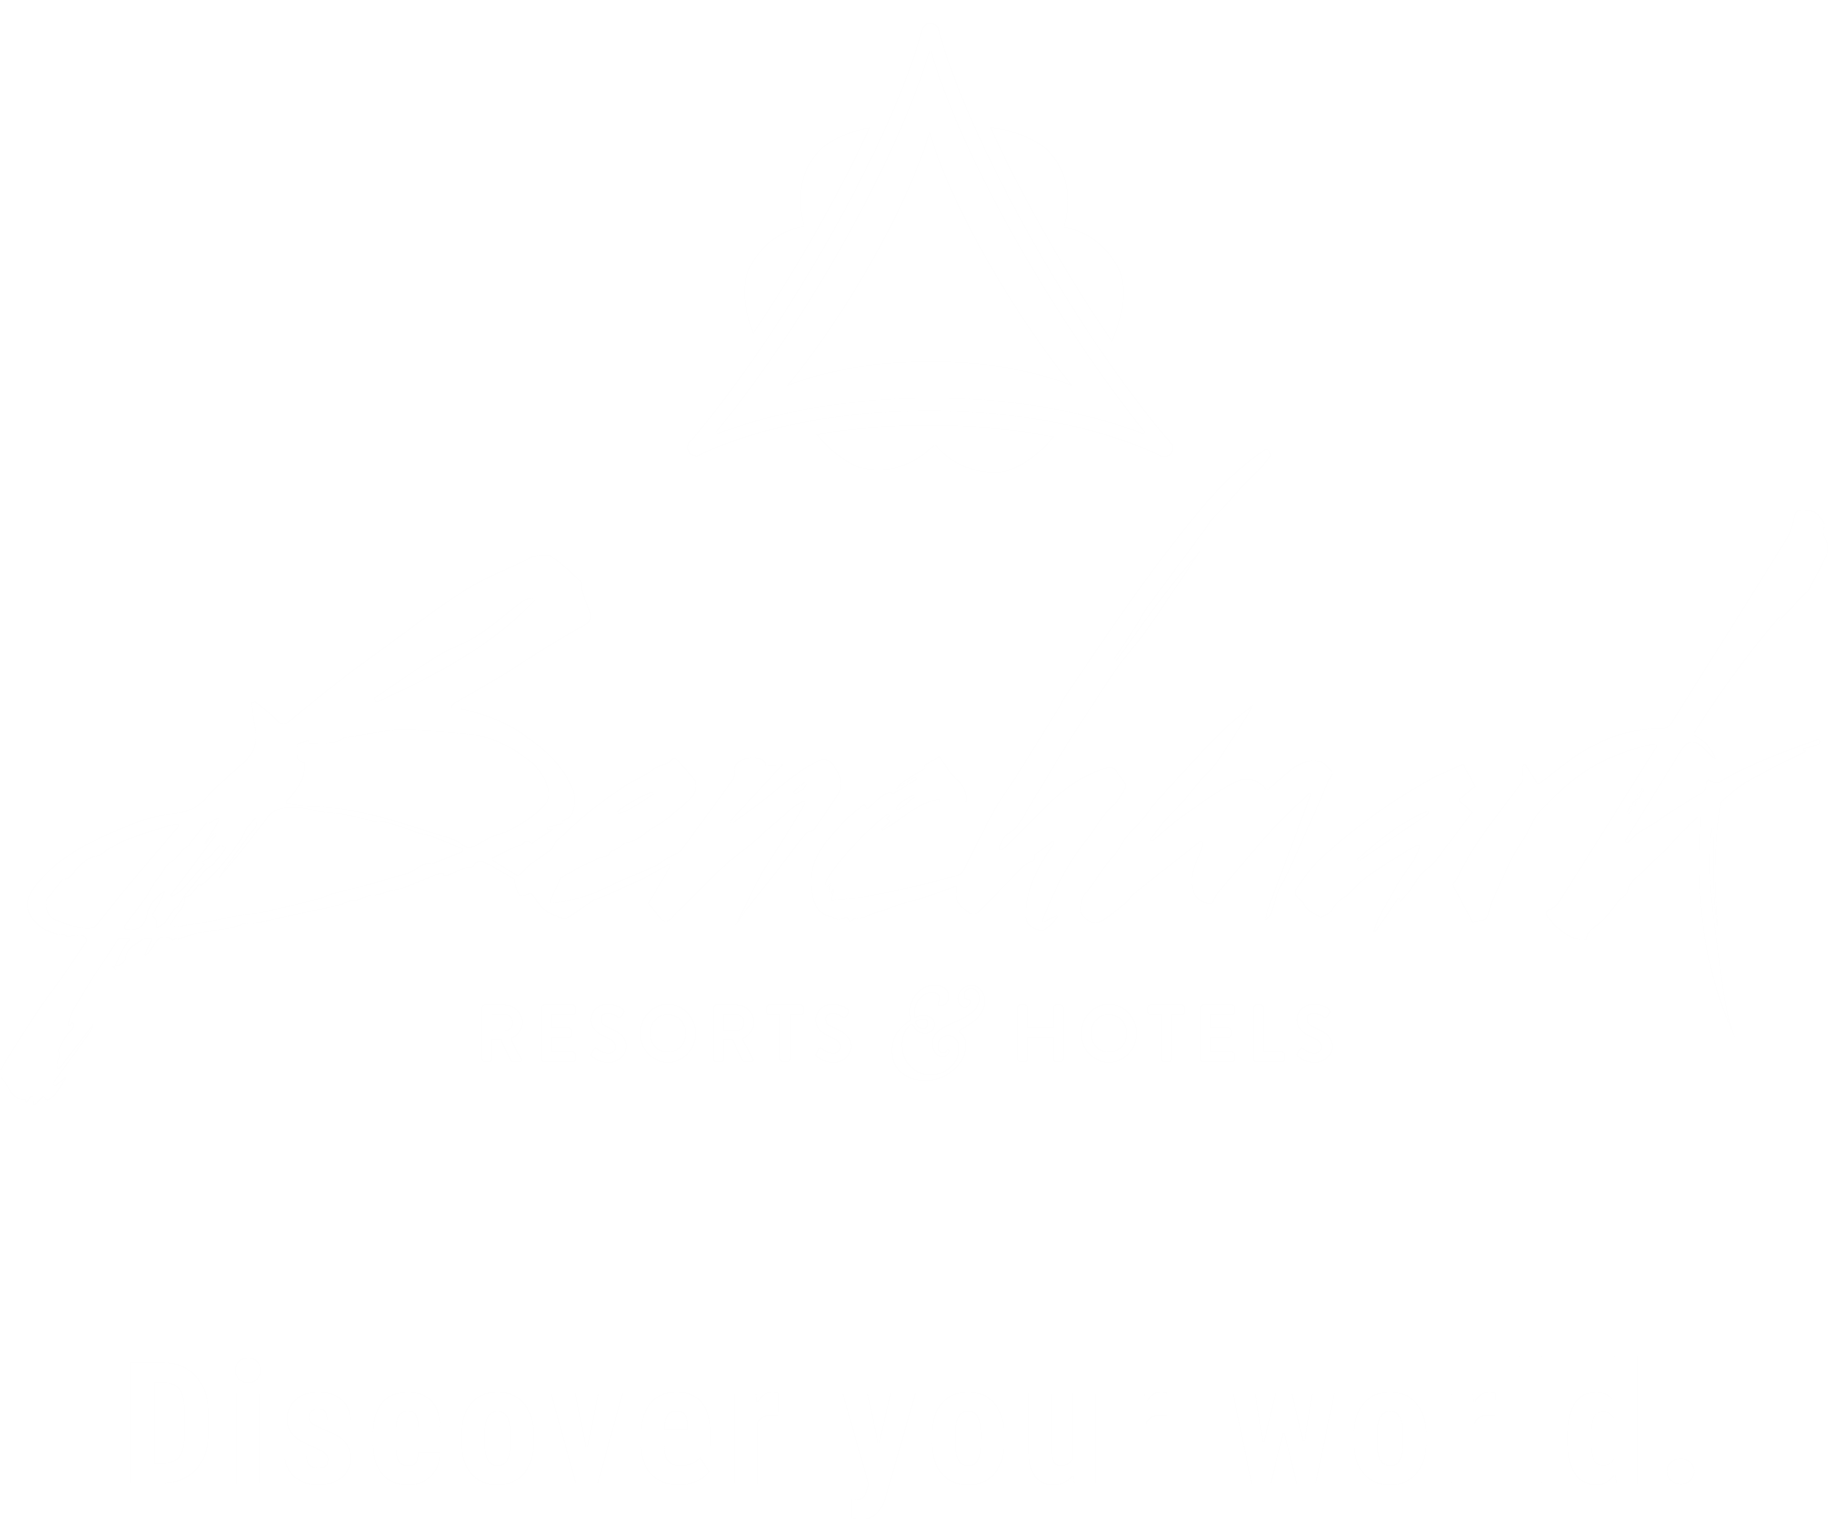 Logo for Benchmark Resorts & Hotels